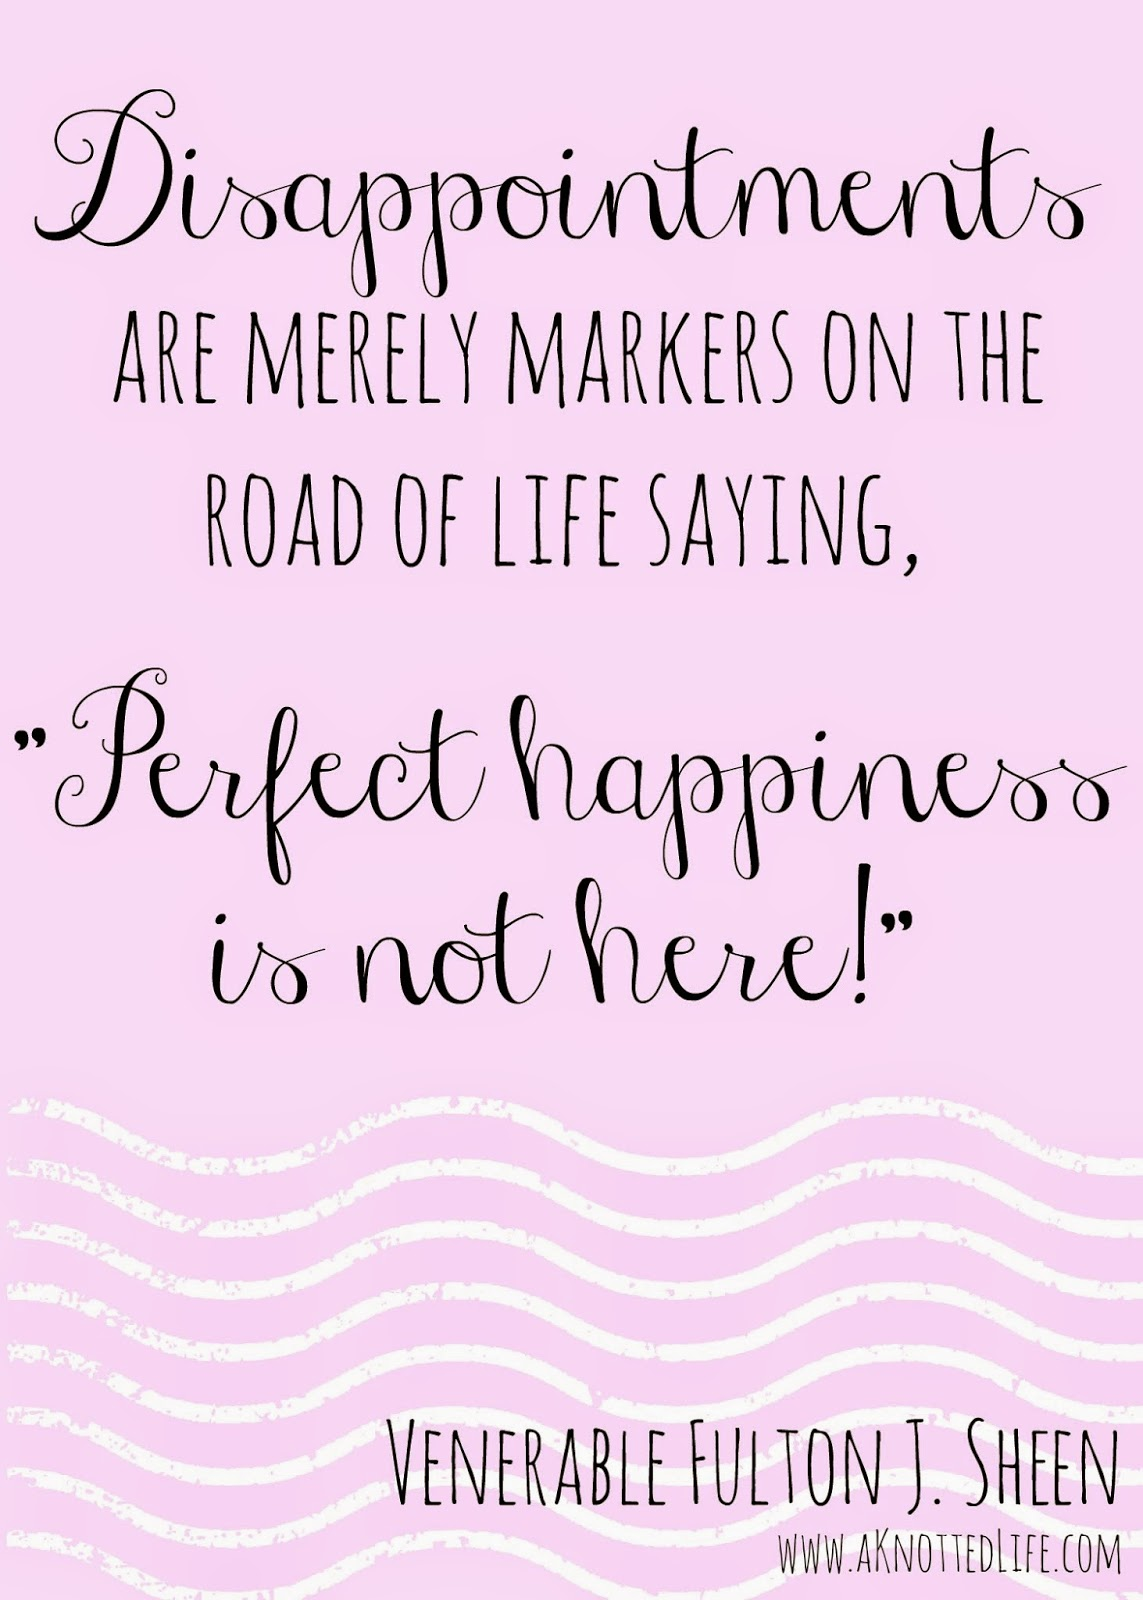 Good Quotes About Happiness Quotes Books Sheen And The Great Northwest